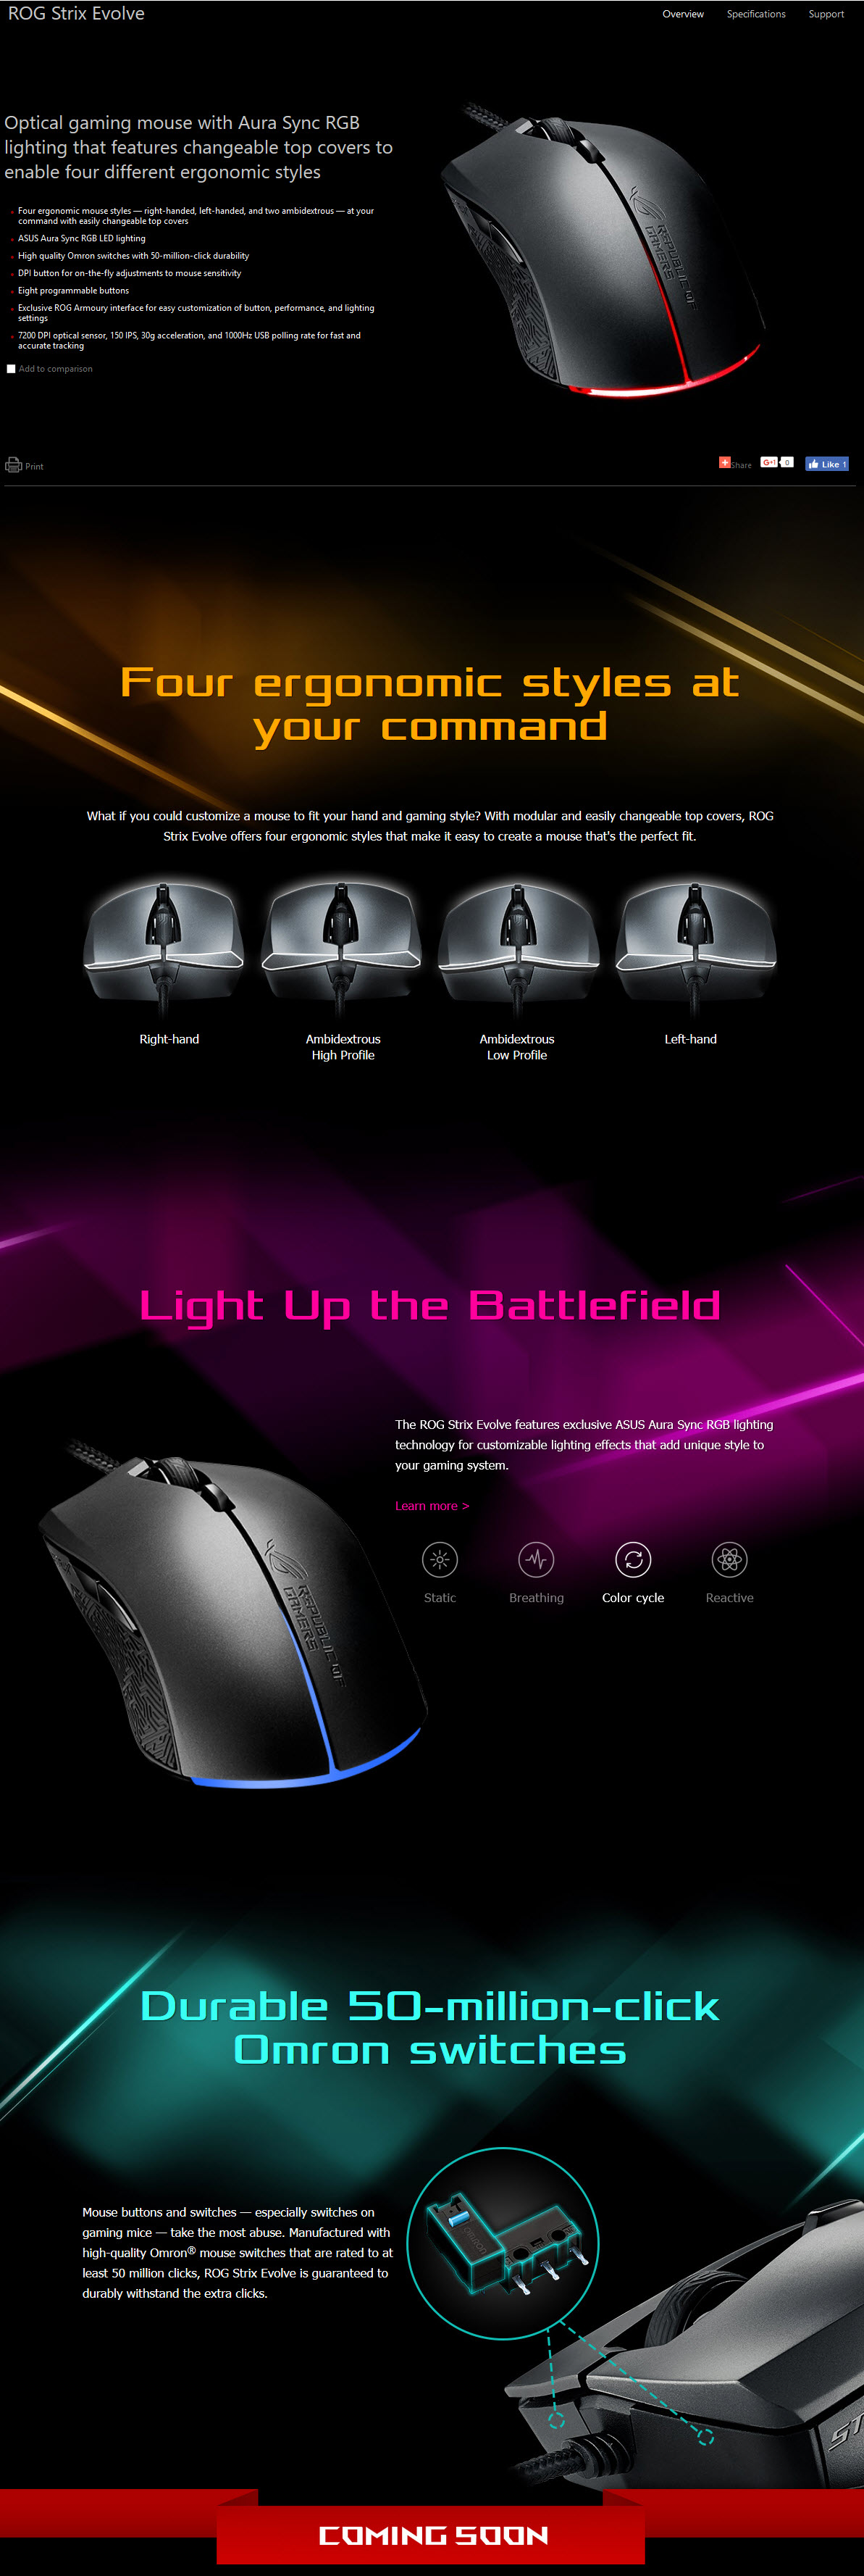 2017 03 13 20 52 24 ASUS ROG Strix Evolve Gaming Mouse Review